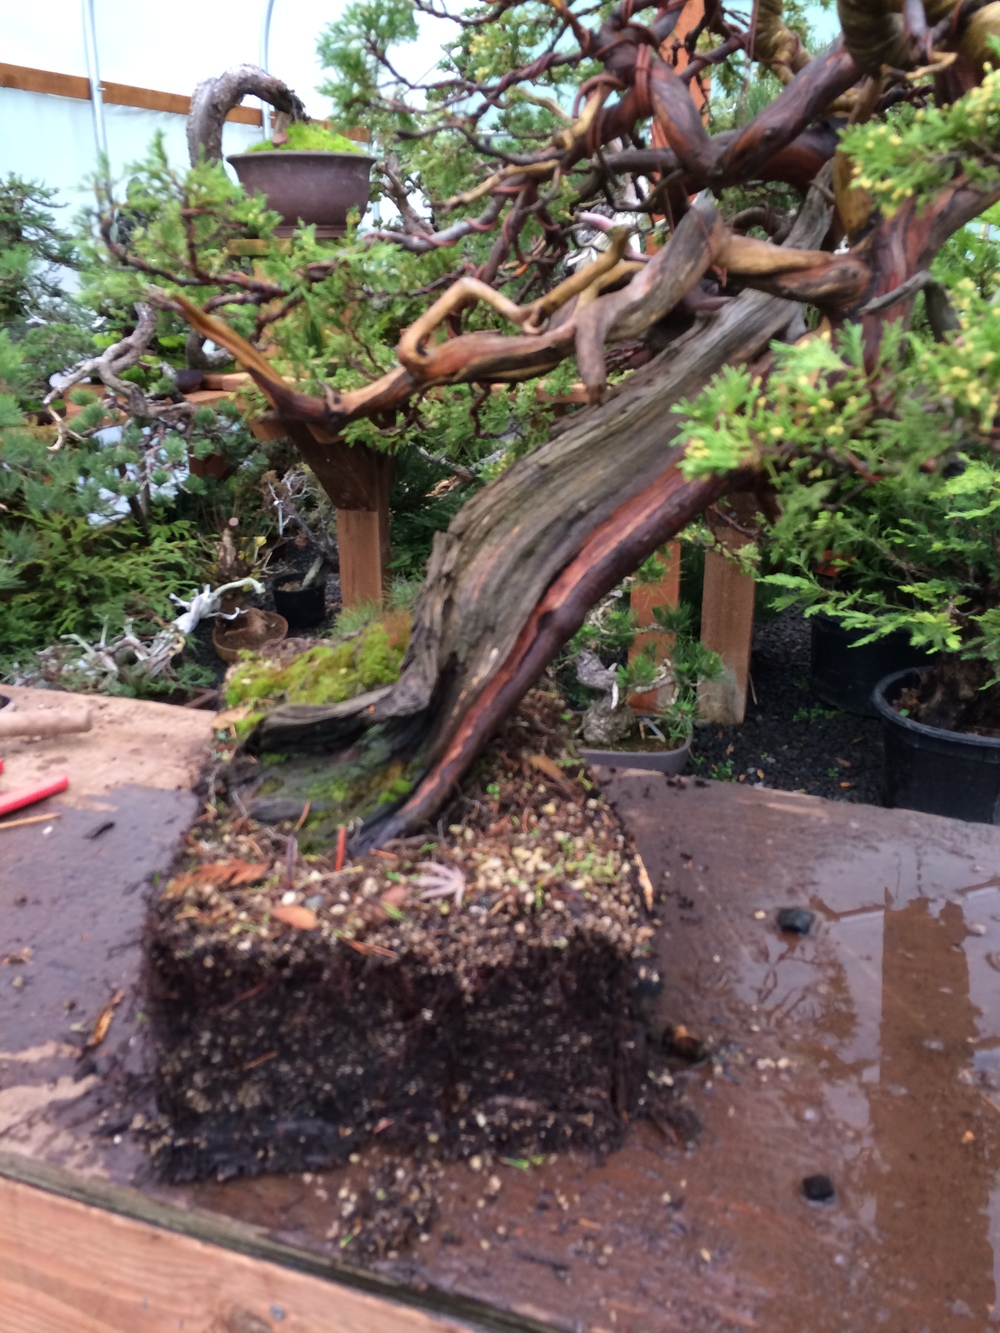 More blur, but a great view of the healthy root system of this collected tree in pumice that it went into immediately after collection by the talented Randy Knight.